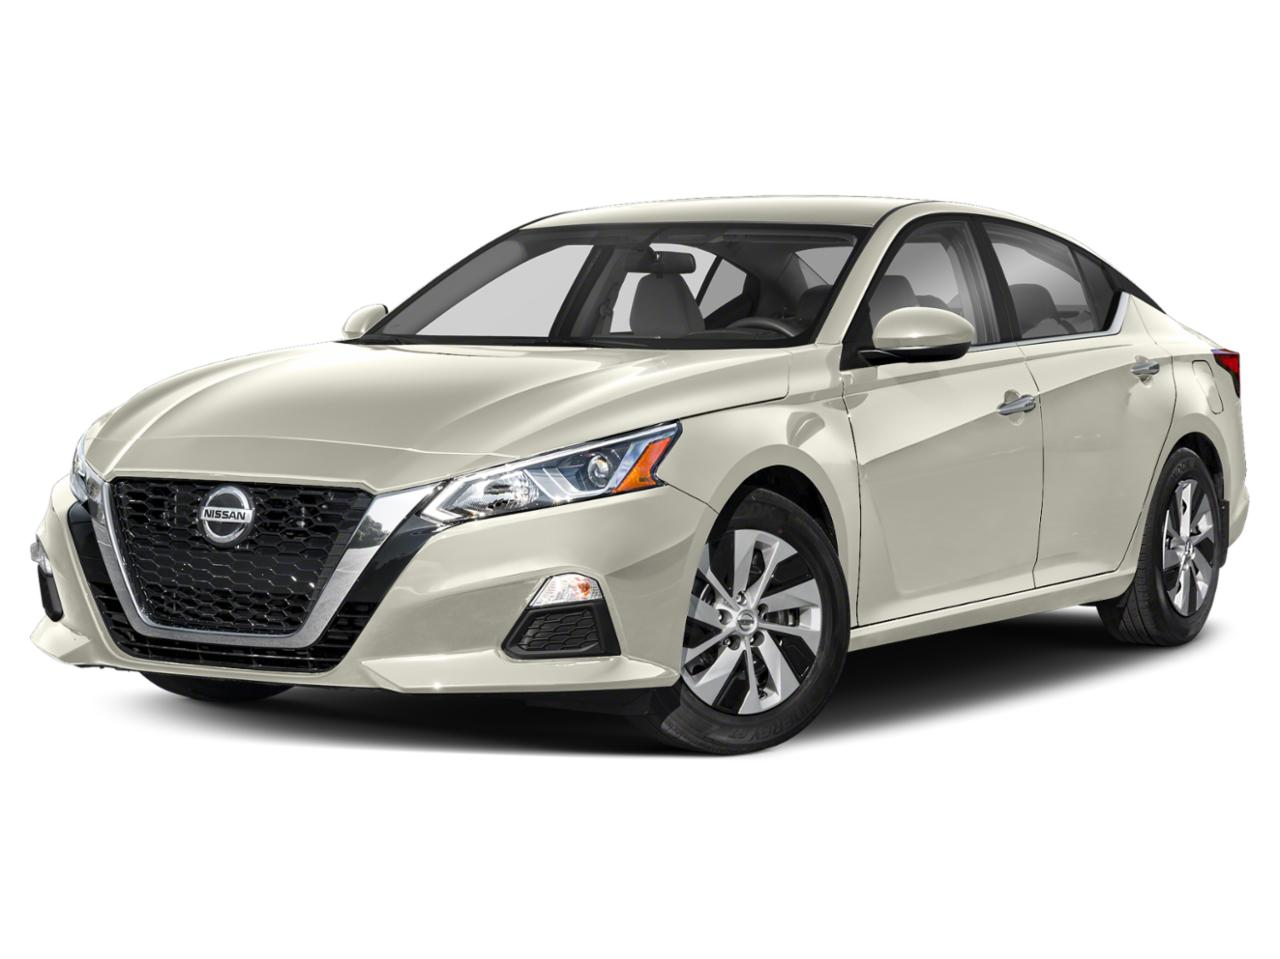 2020 Nissan Altima 2.5 S 4dr Car Slide